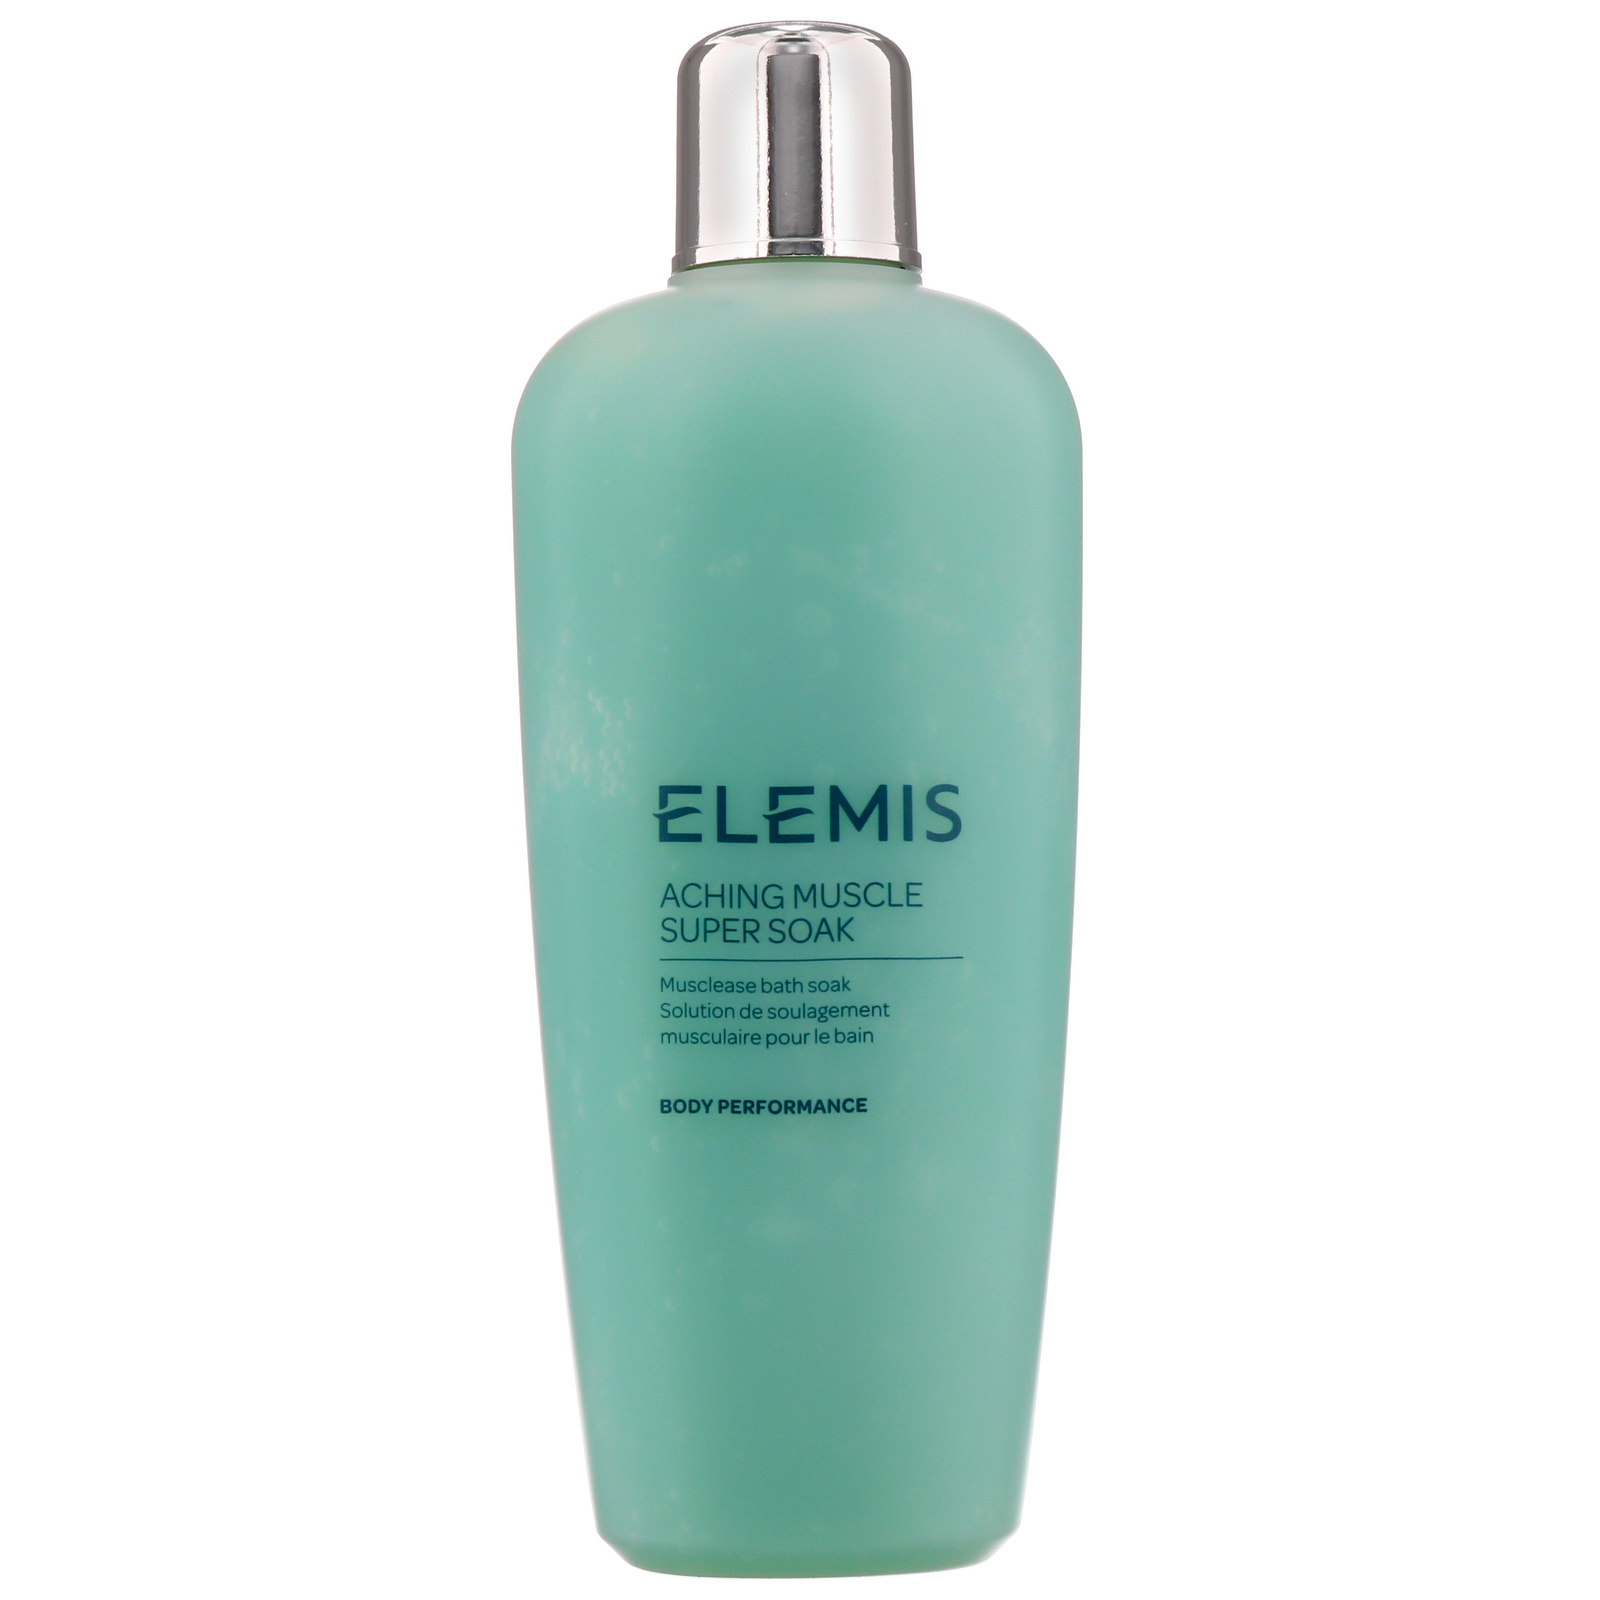 Elemis Body Performance Aching Muscle Super Soak 400ml / 13.5 fl.oz.